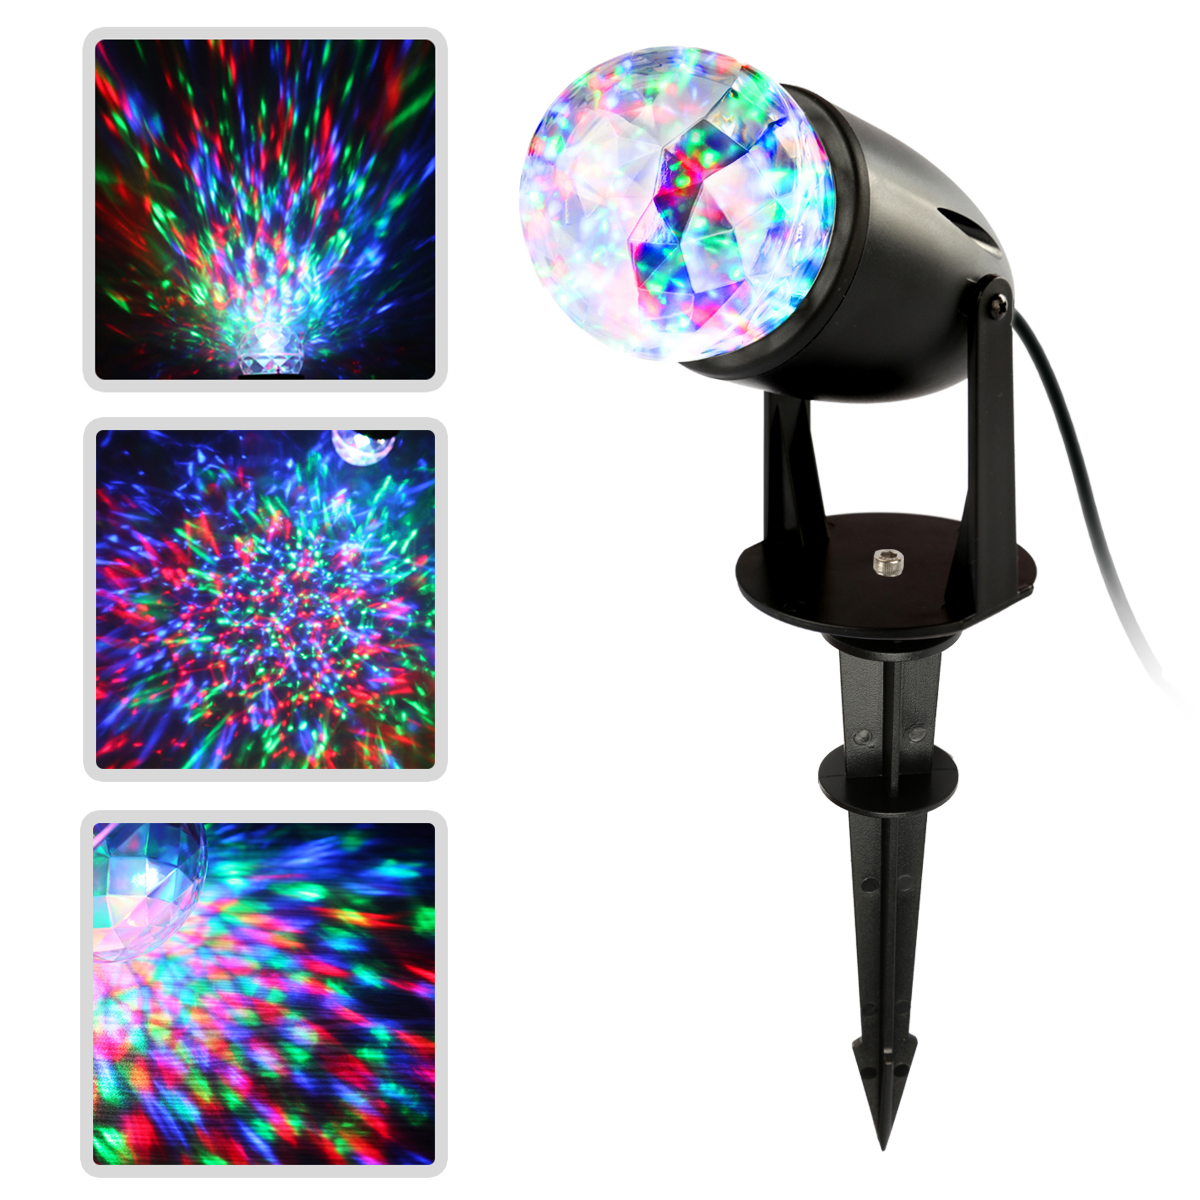 1 Pc Waterproof Magical Spotlight Rotating Led Projector Light Night Light with Water Ripple Effects for Party Outdoor Holiday & Home, Garden, Mood Lamp for Baby Kids, Bedroom (Colorful)